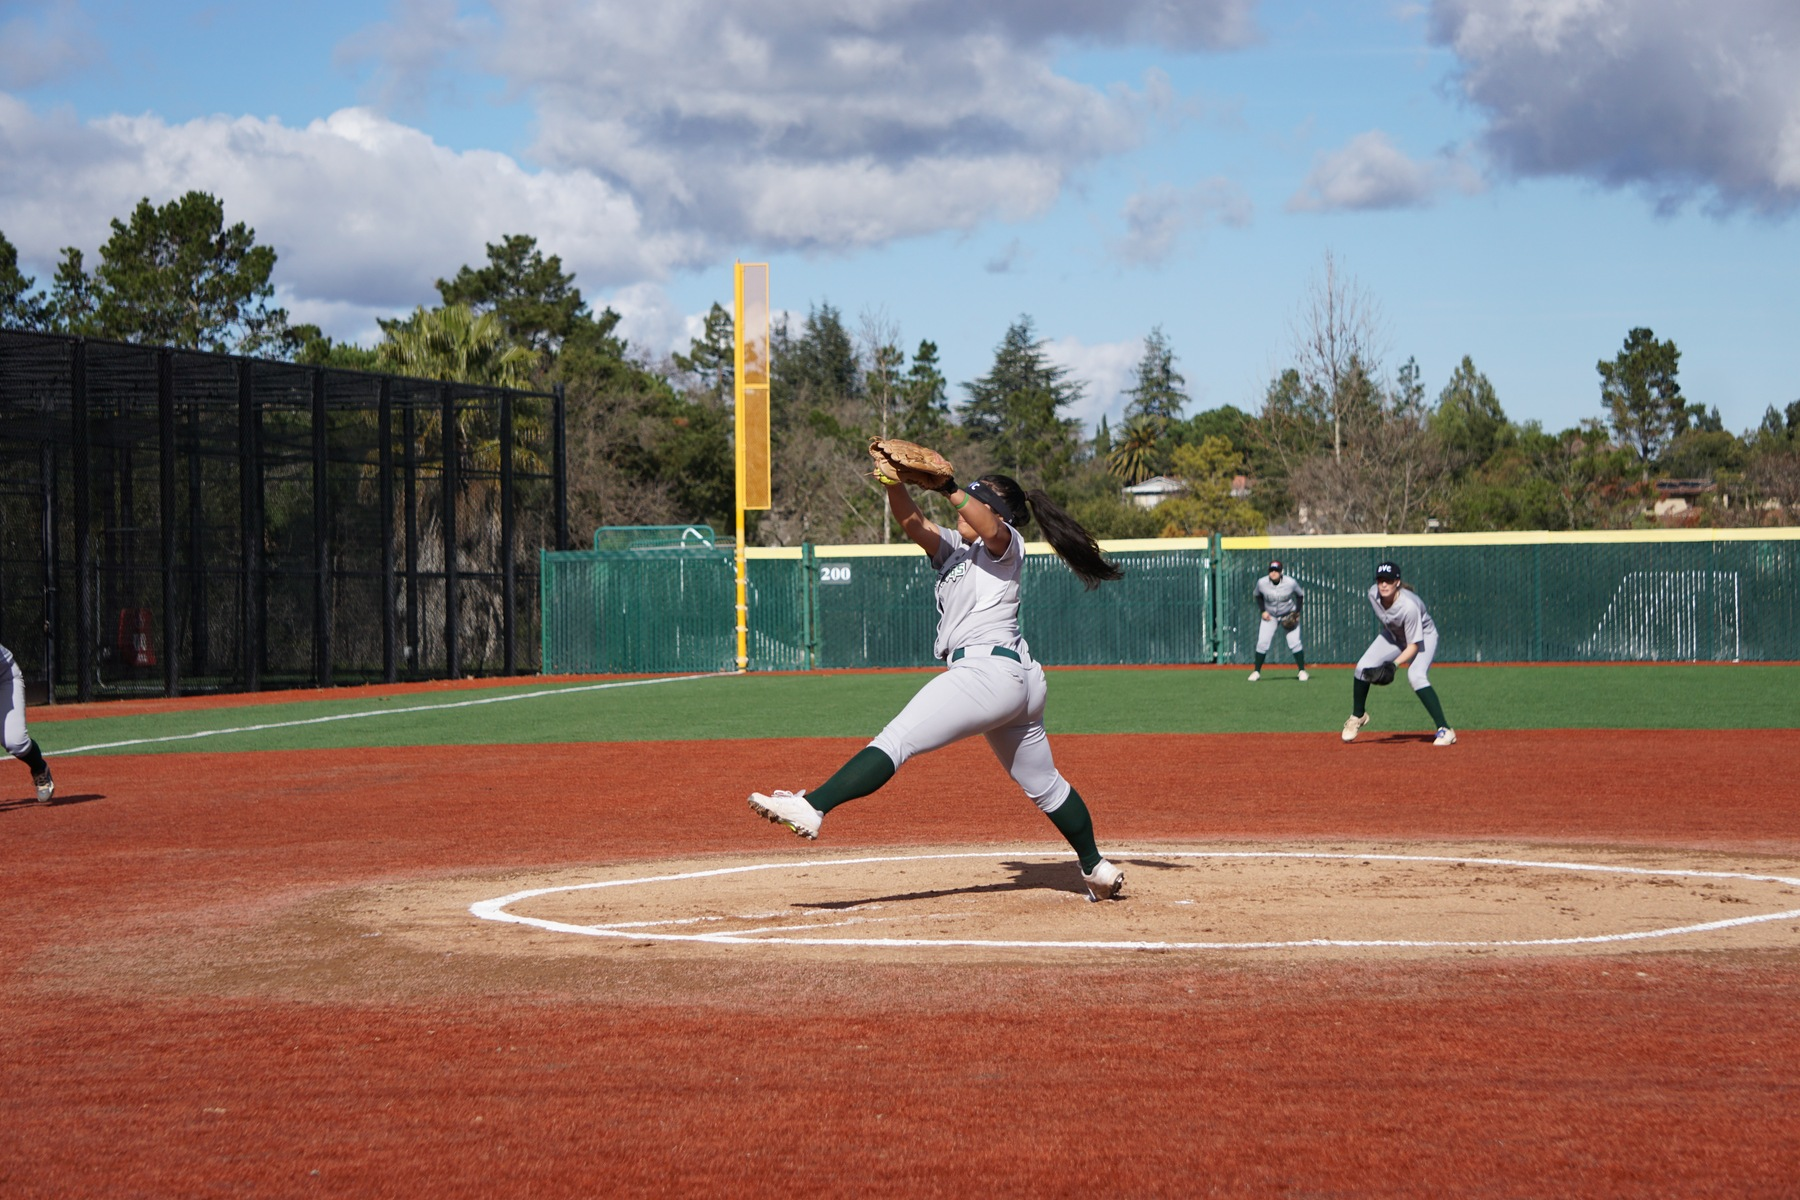 Four RBI Day For Kathryn Cassin Seals The Deal In Vikings's Victory Over Chabot College